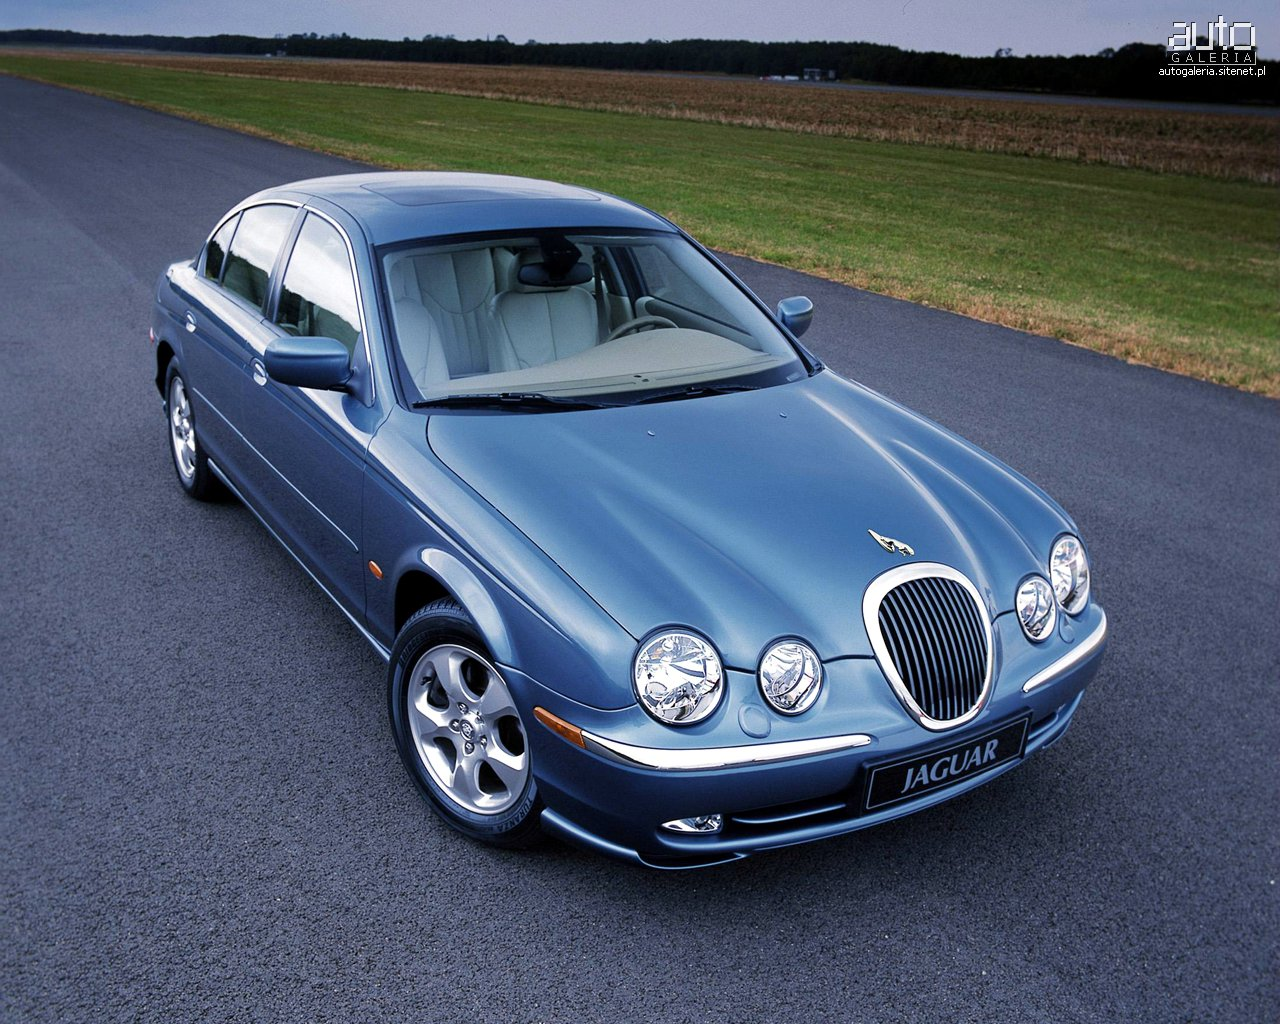 Jaguar S-type #16